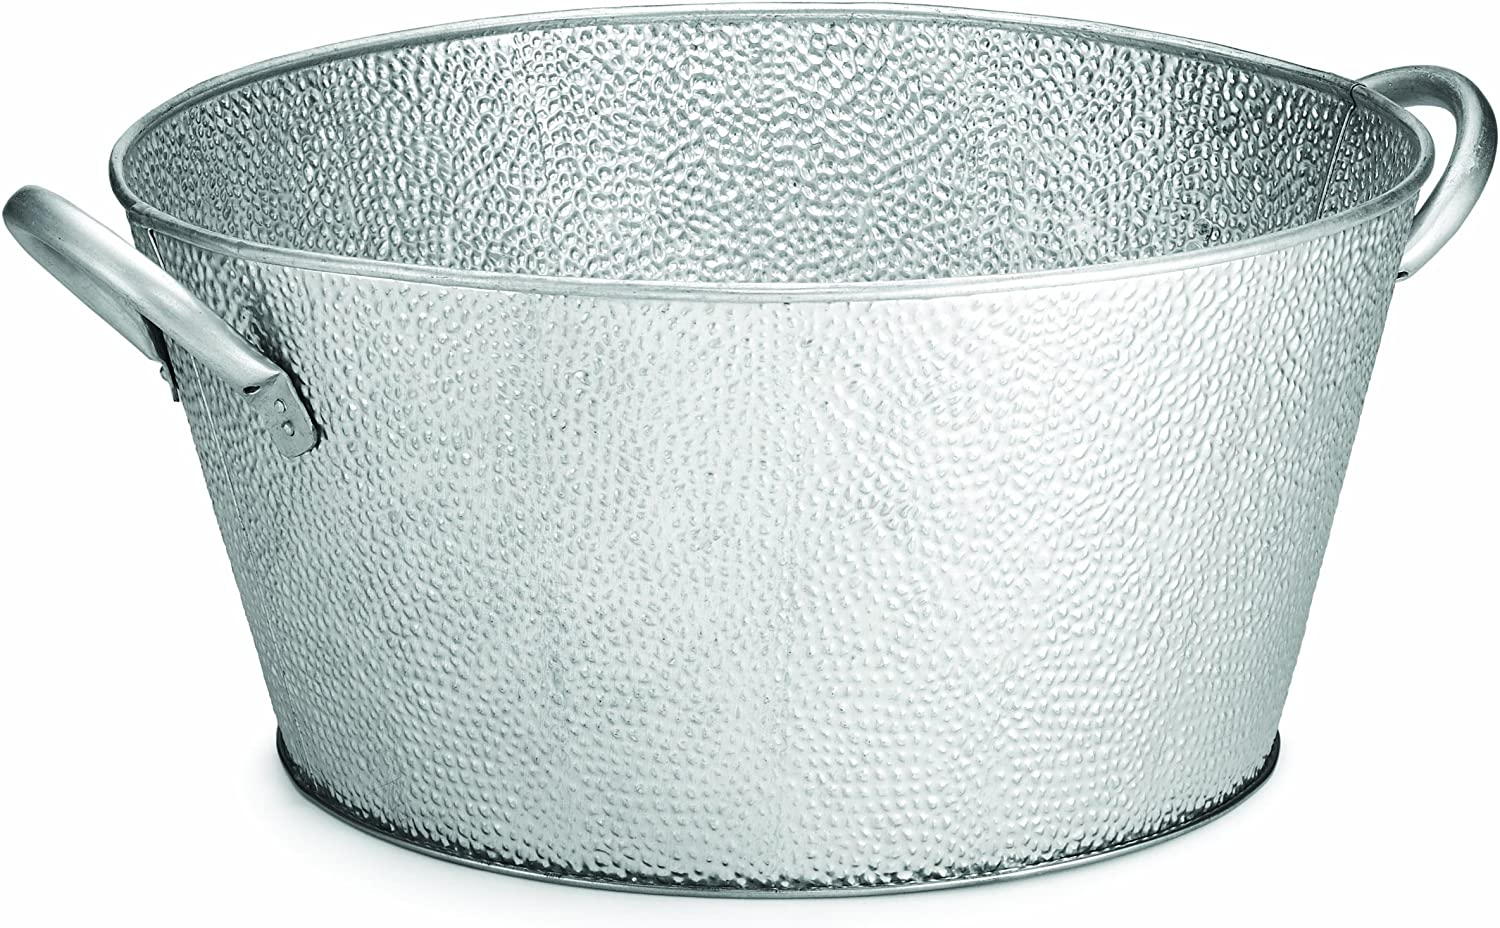 TableCraft GT1515 Galvanized Collection Round Beverage Tub, 18.5 x 15.1 x 7-Inch